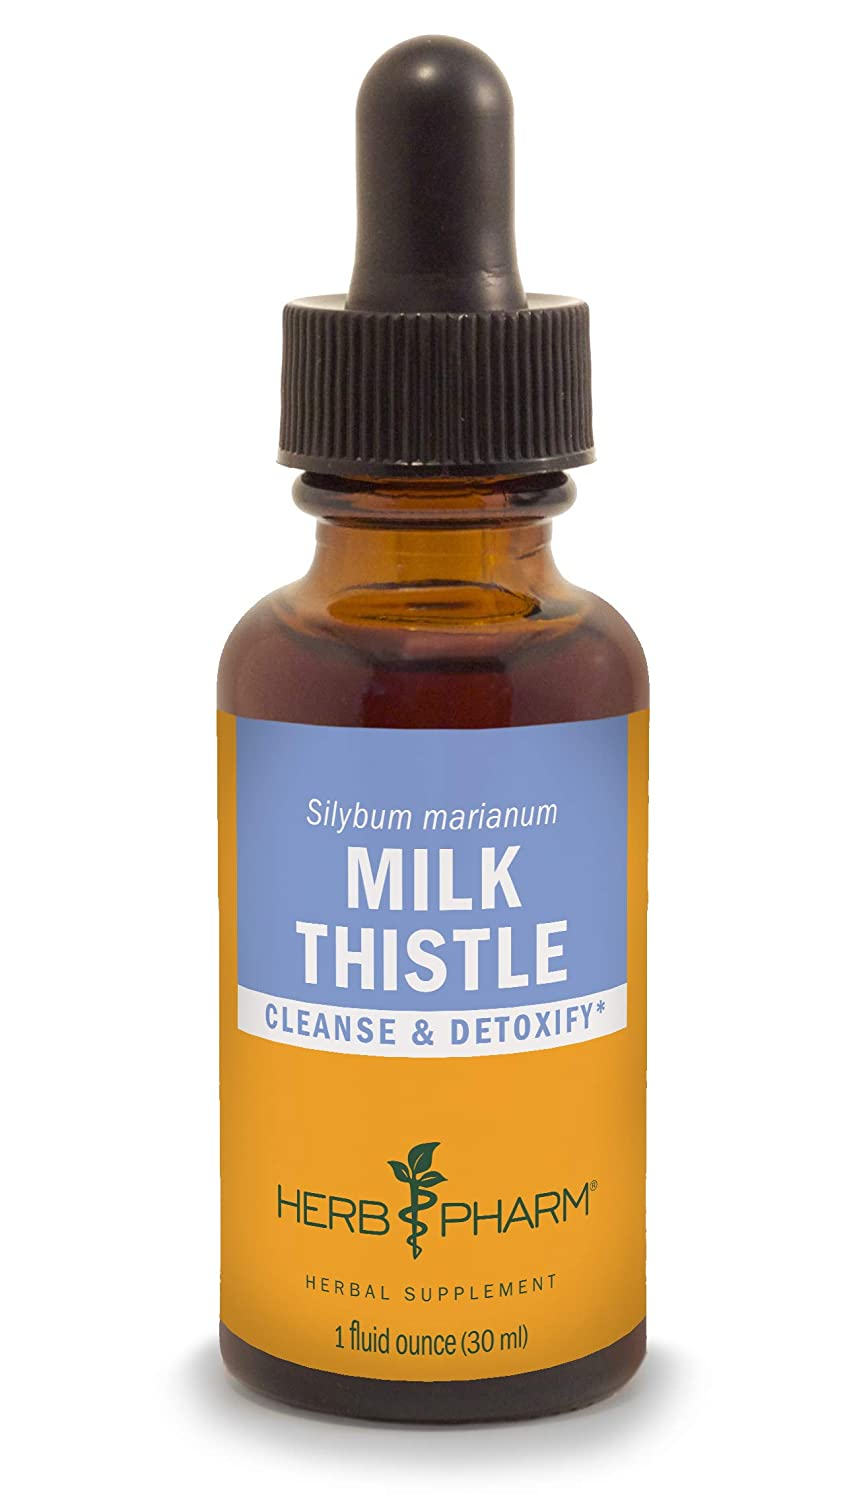 The preparation Ovesol. Instructions for use (tablets and tincture)